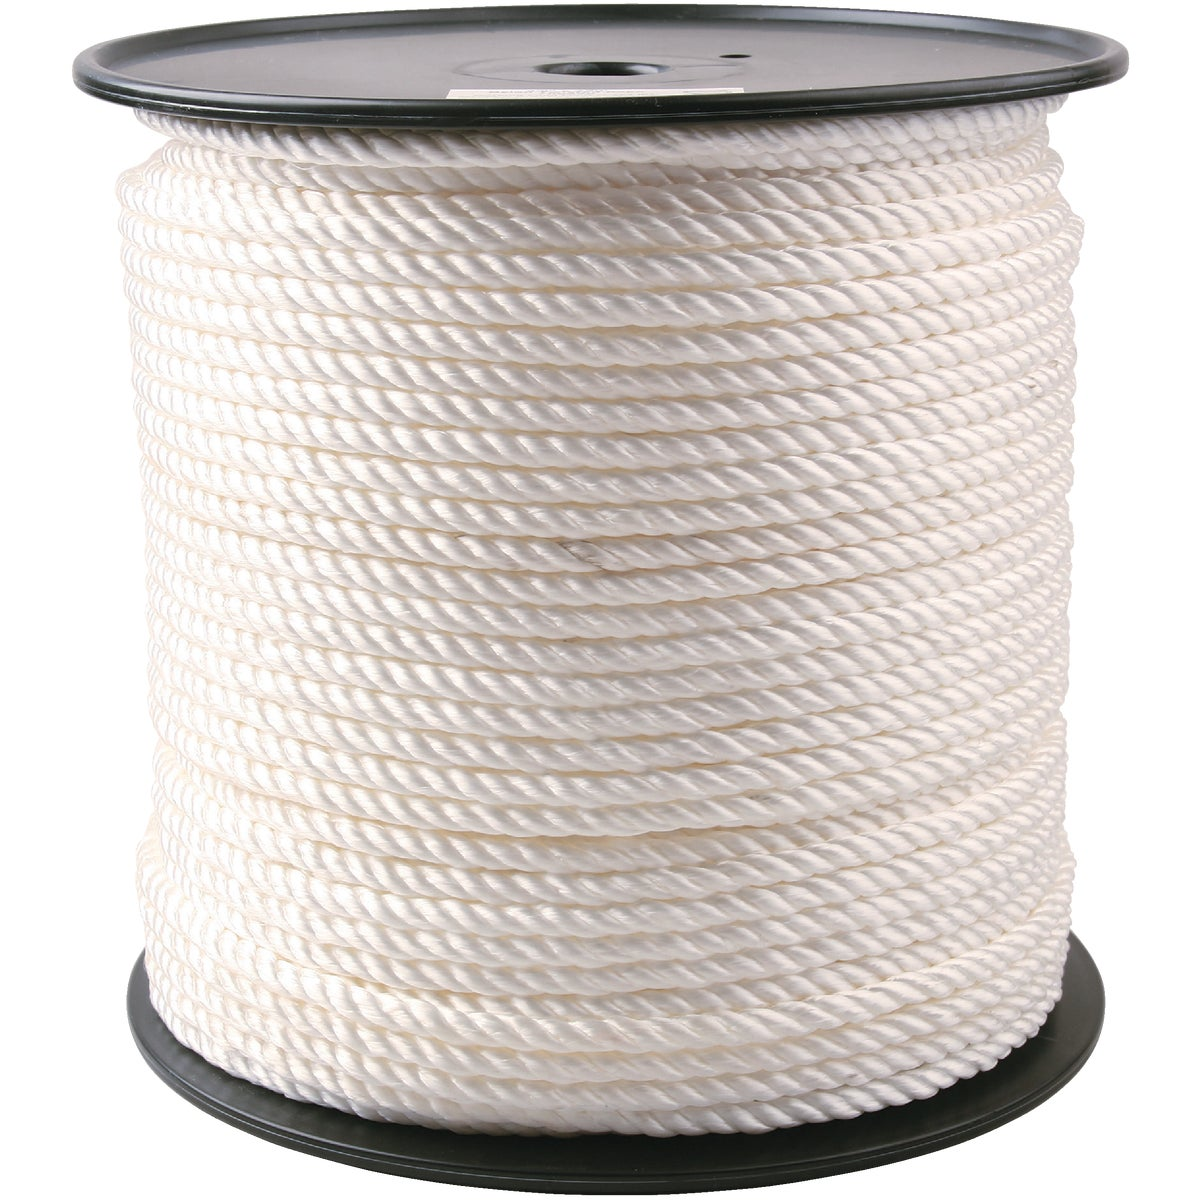 "3/8""X300' NYL TWIST ROPE - 700398 by Do it Best"